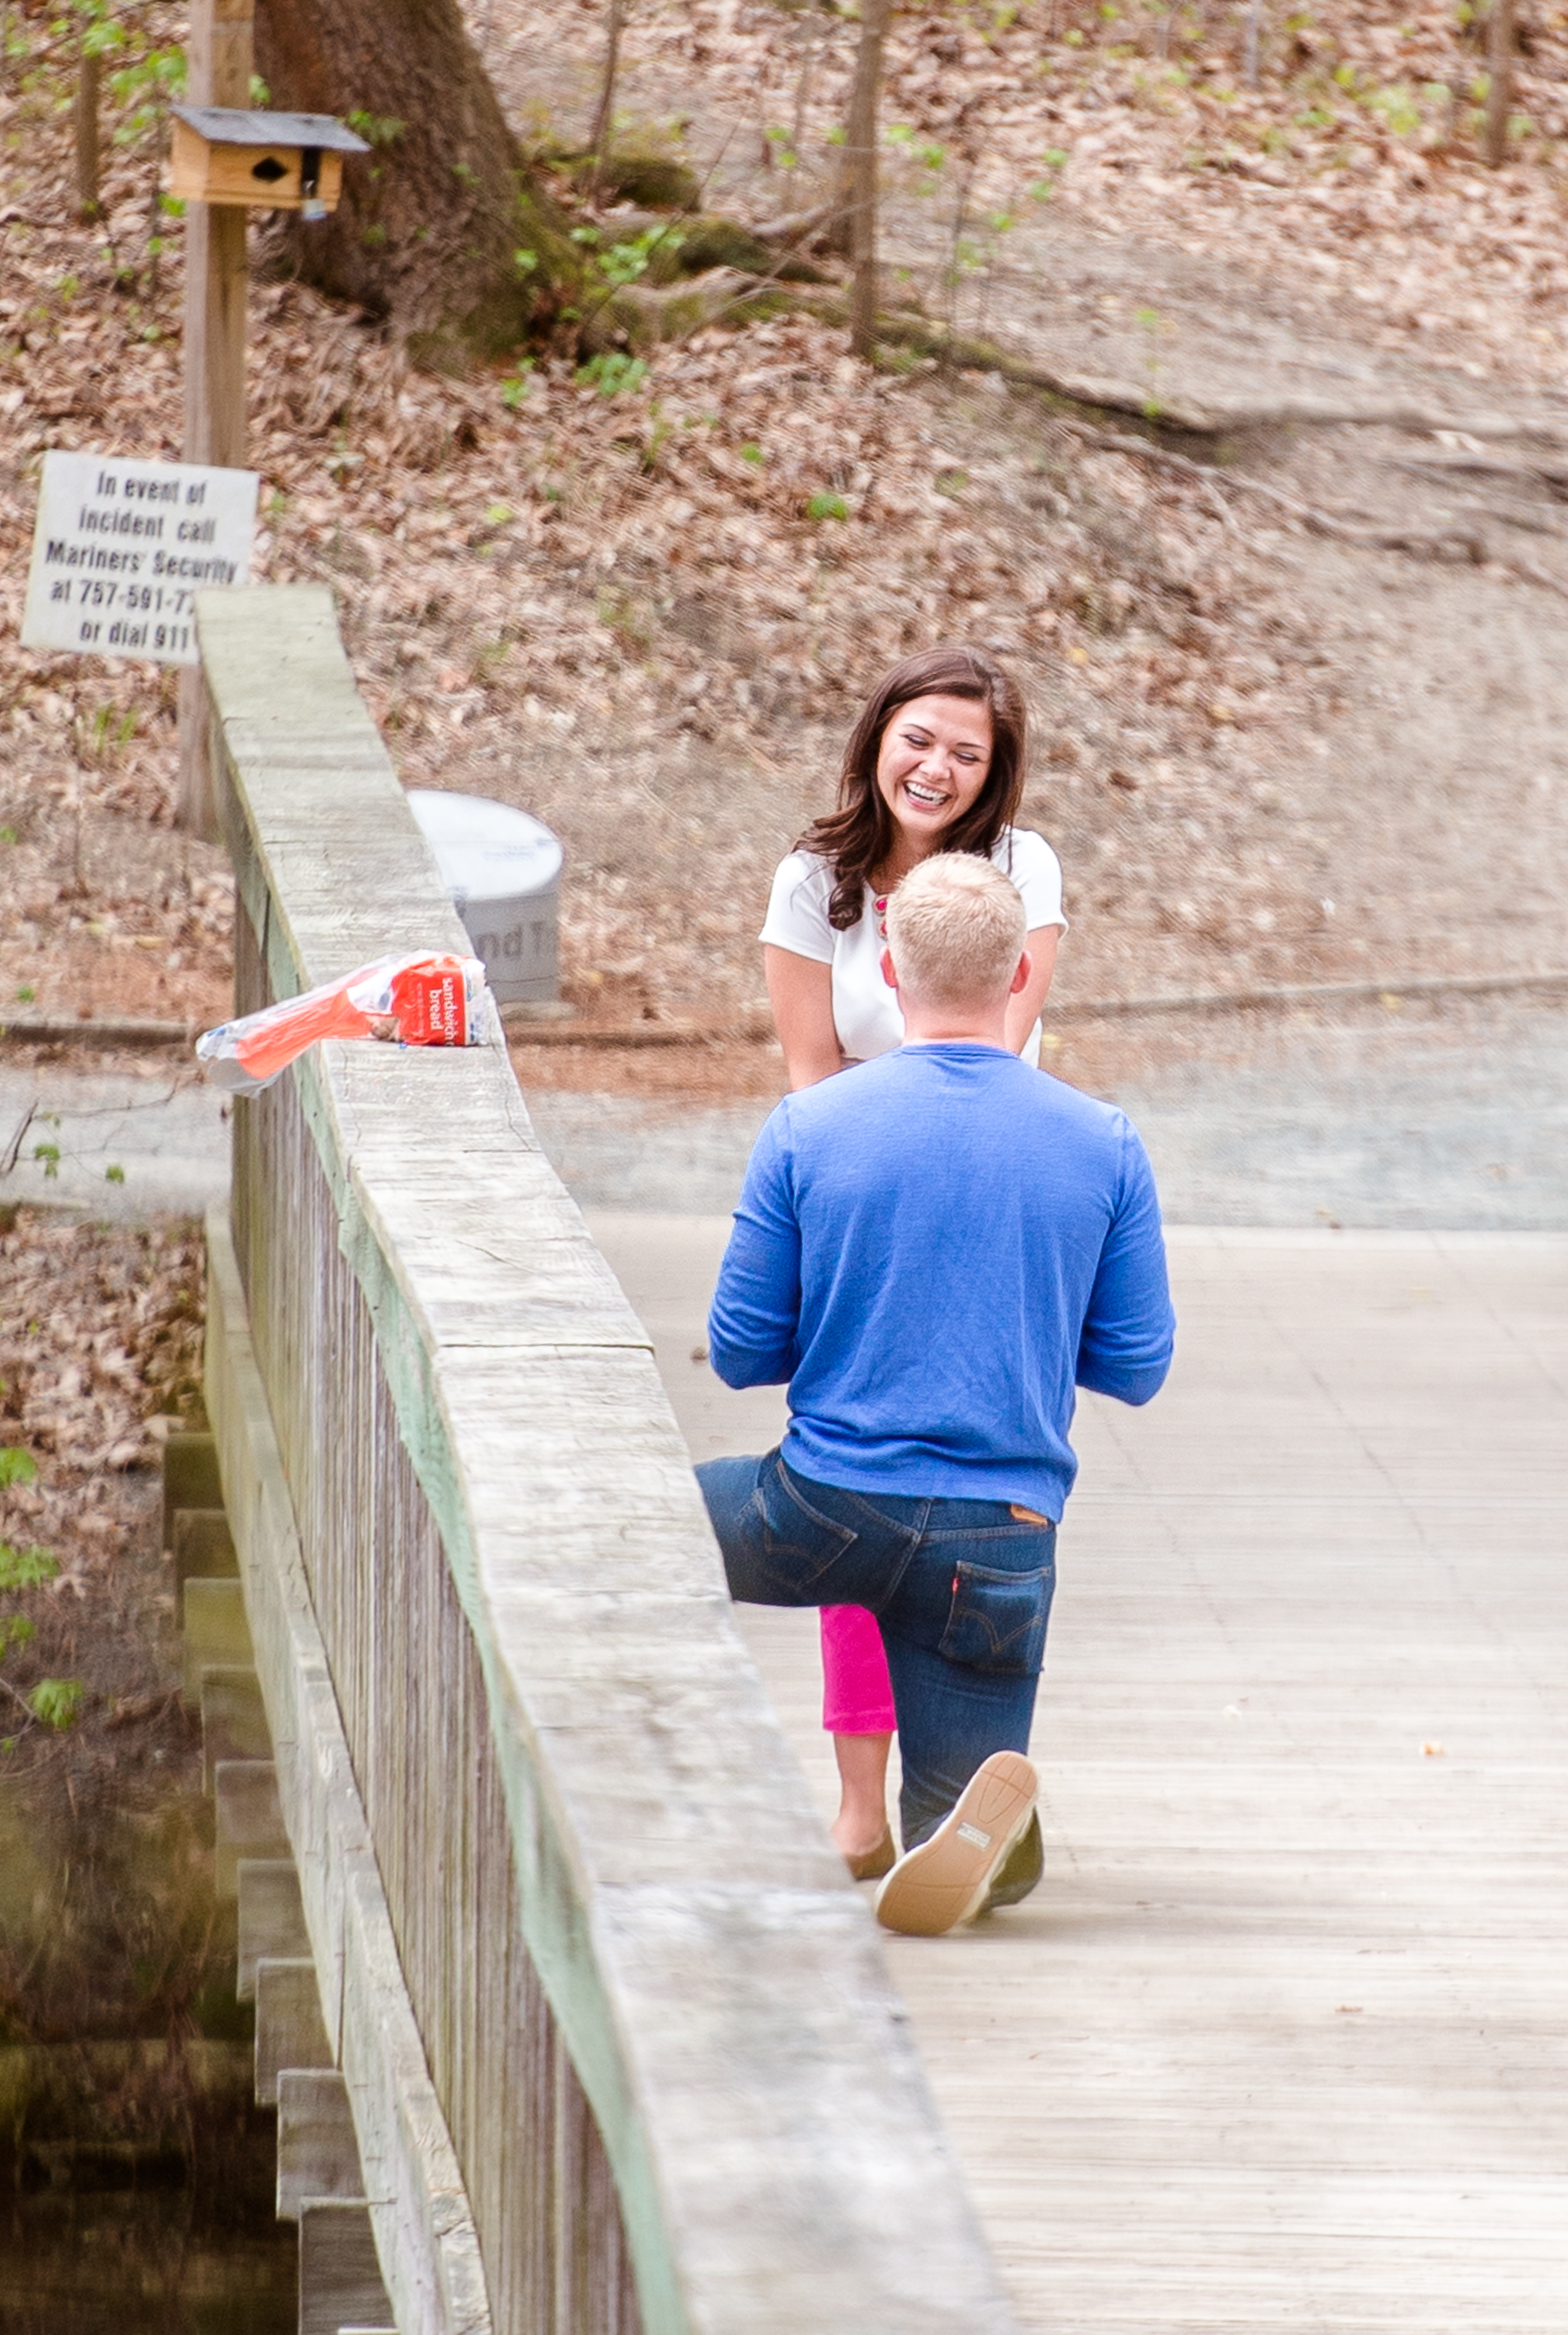 engagement-video-ideas_cute-marriage-proposal-ideas_62